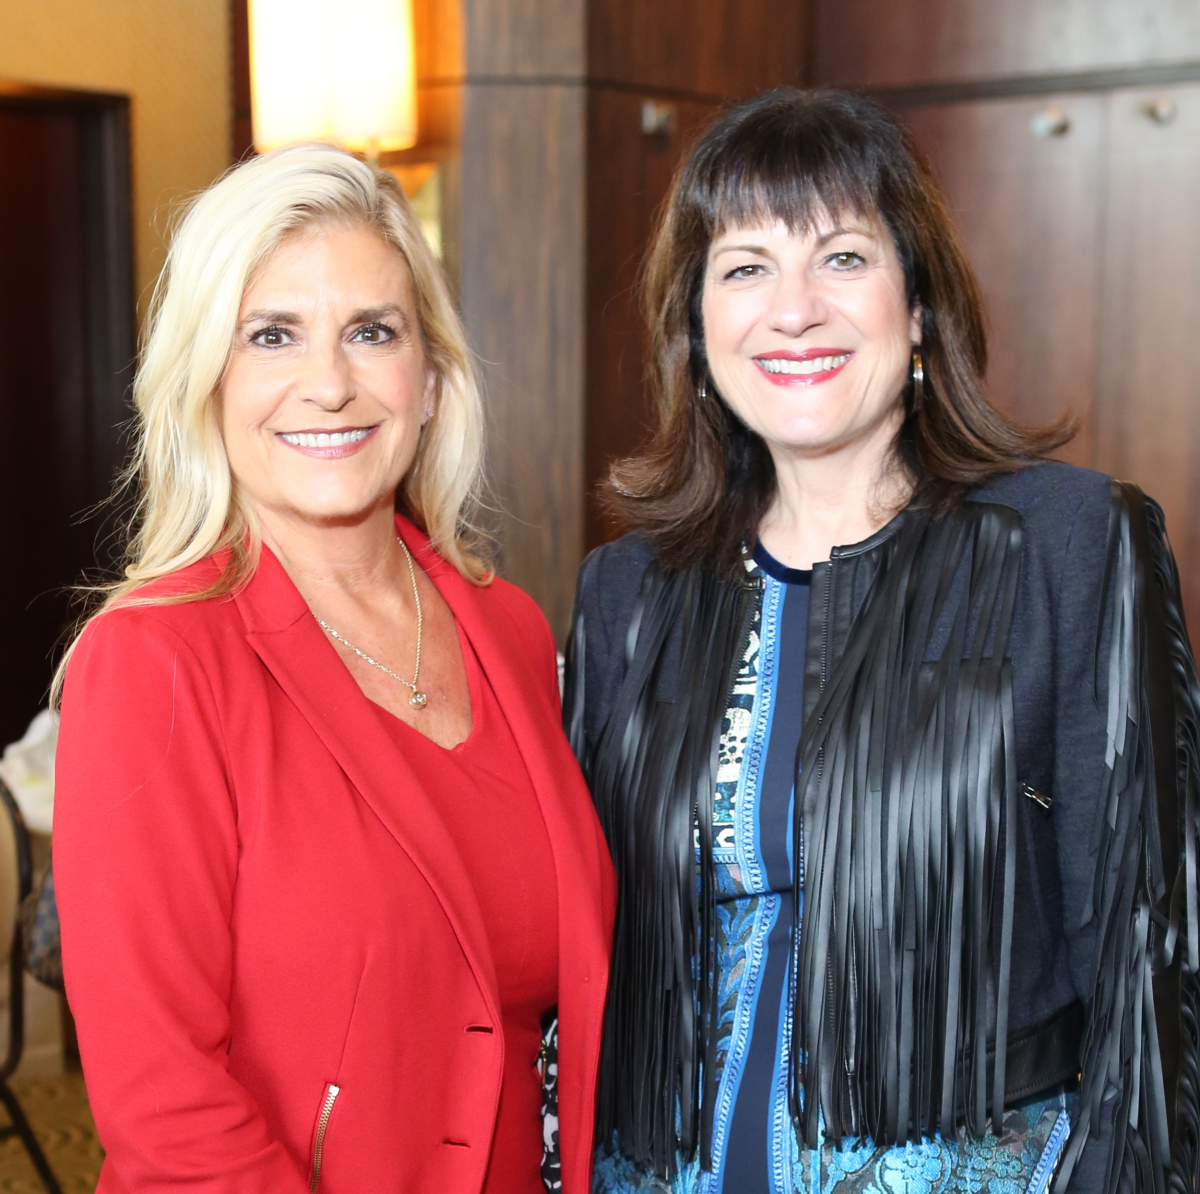 News, Shelby, Child Advocates Angels of Hope luncheon, Dec. 2015, Vicki Lehner, Ellie Francisco